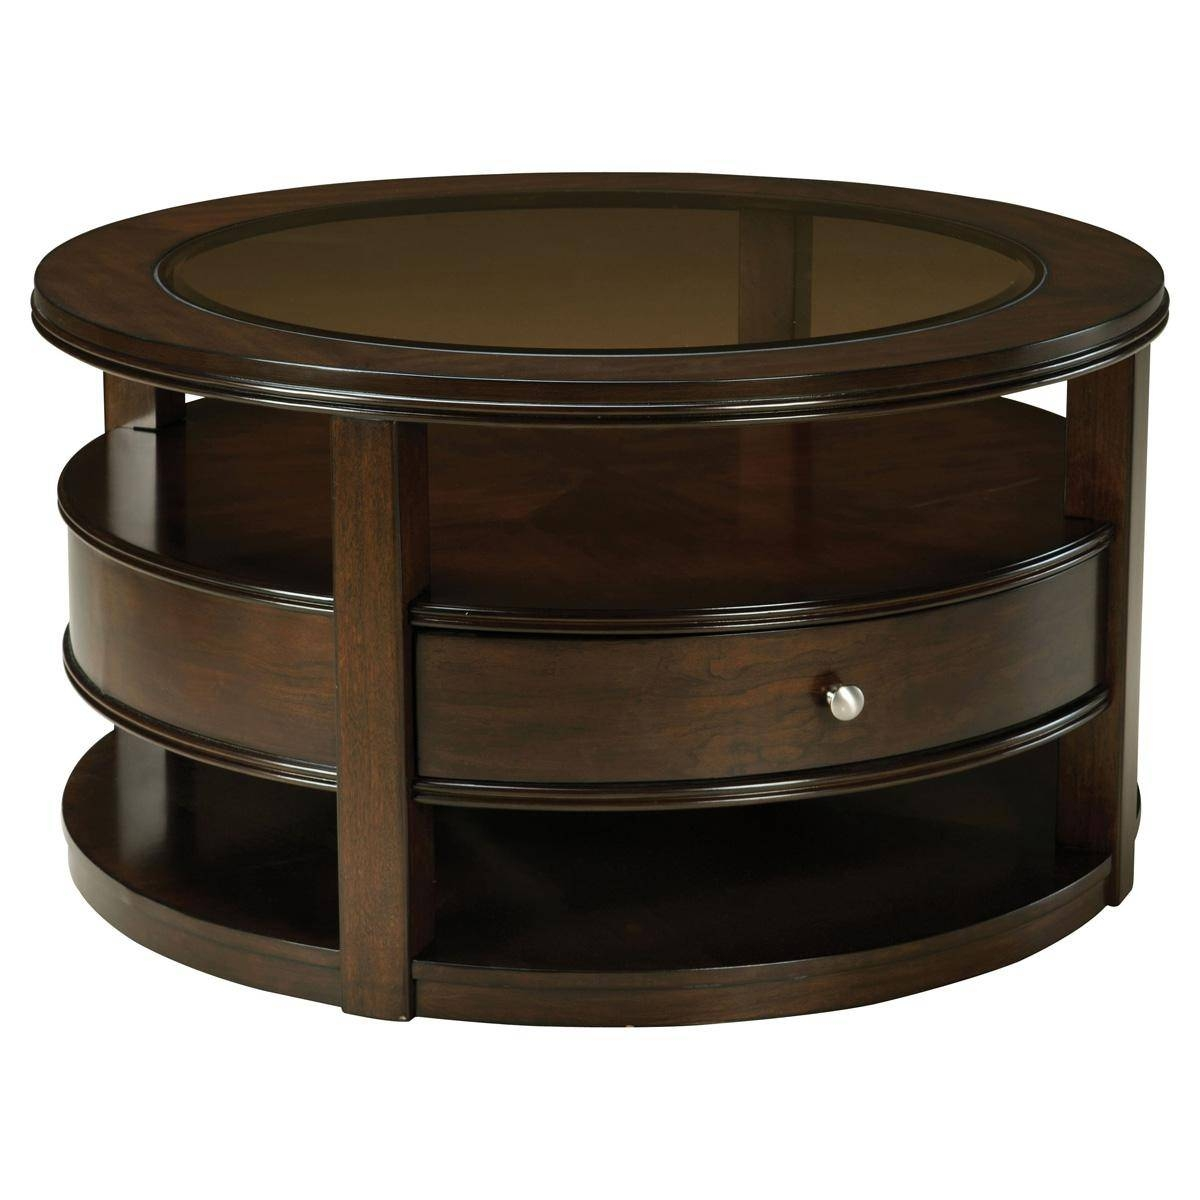 Coffee Table: Round Coffee Table Design 2016 Coffee Tables On Sale within Round Pine Coffee Tables (Image 8 of 30)